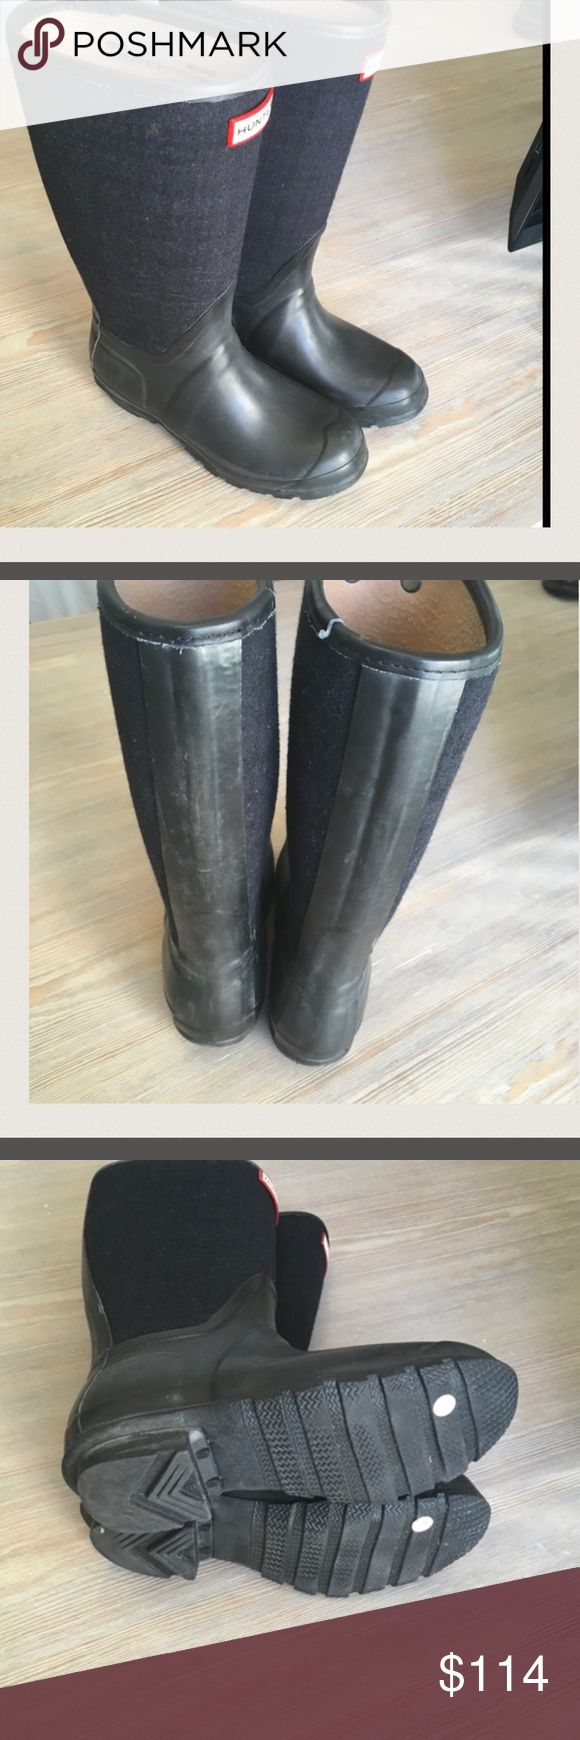 Hunter Navy Rain Boot with Wool Shaft At this price, these boots won't last. These navy wool shaft rain boots are in good used condition. This price is so good, these boots are NOT eligible for an additional bundle discount. Thanks! Hunter Boots Shoes Winter & Rain Boots